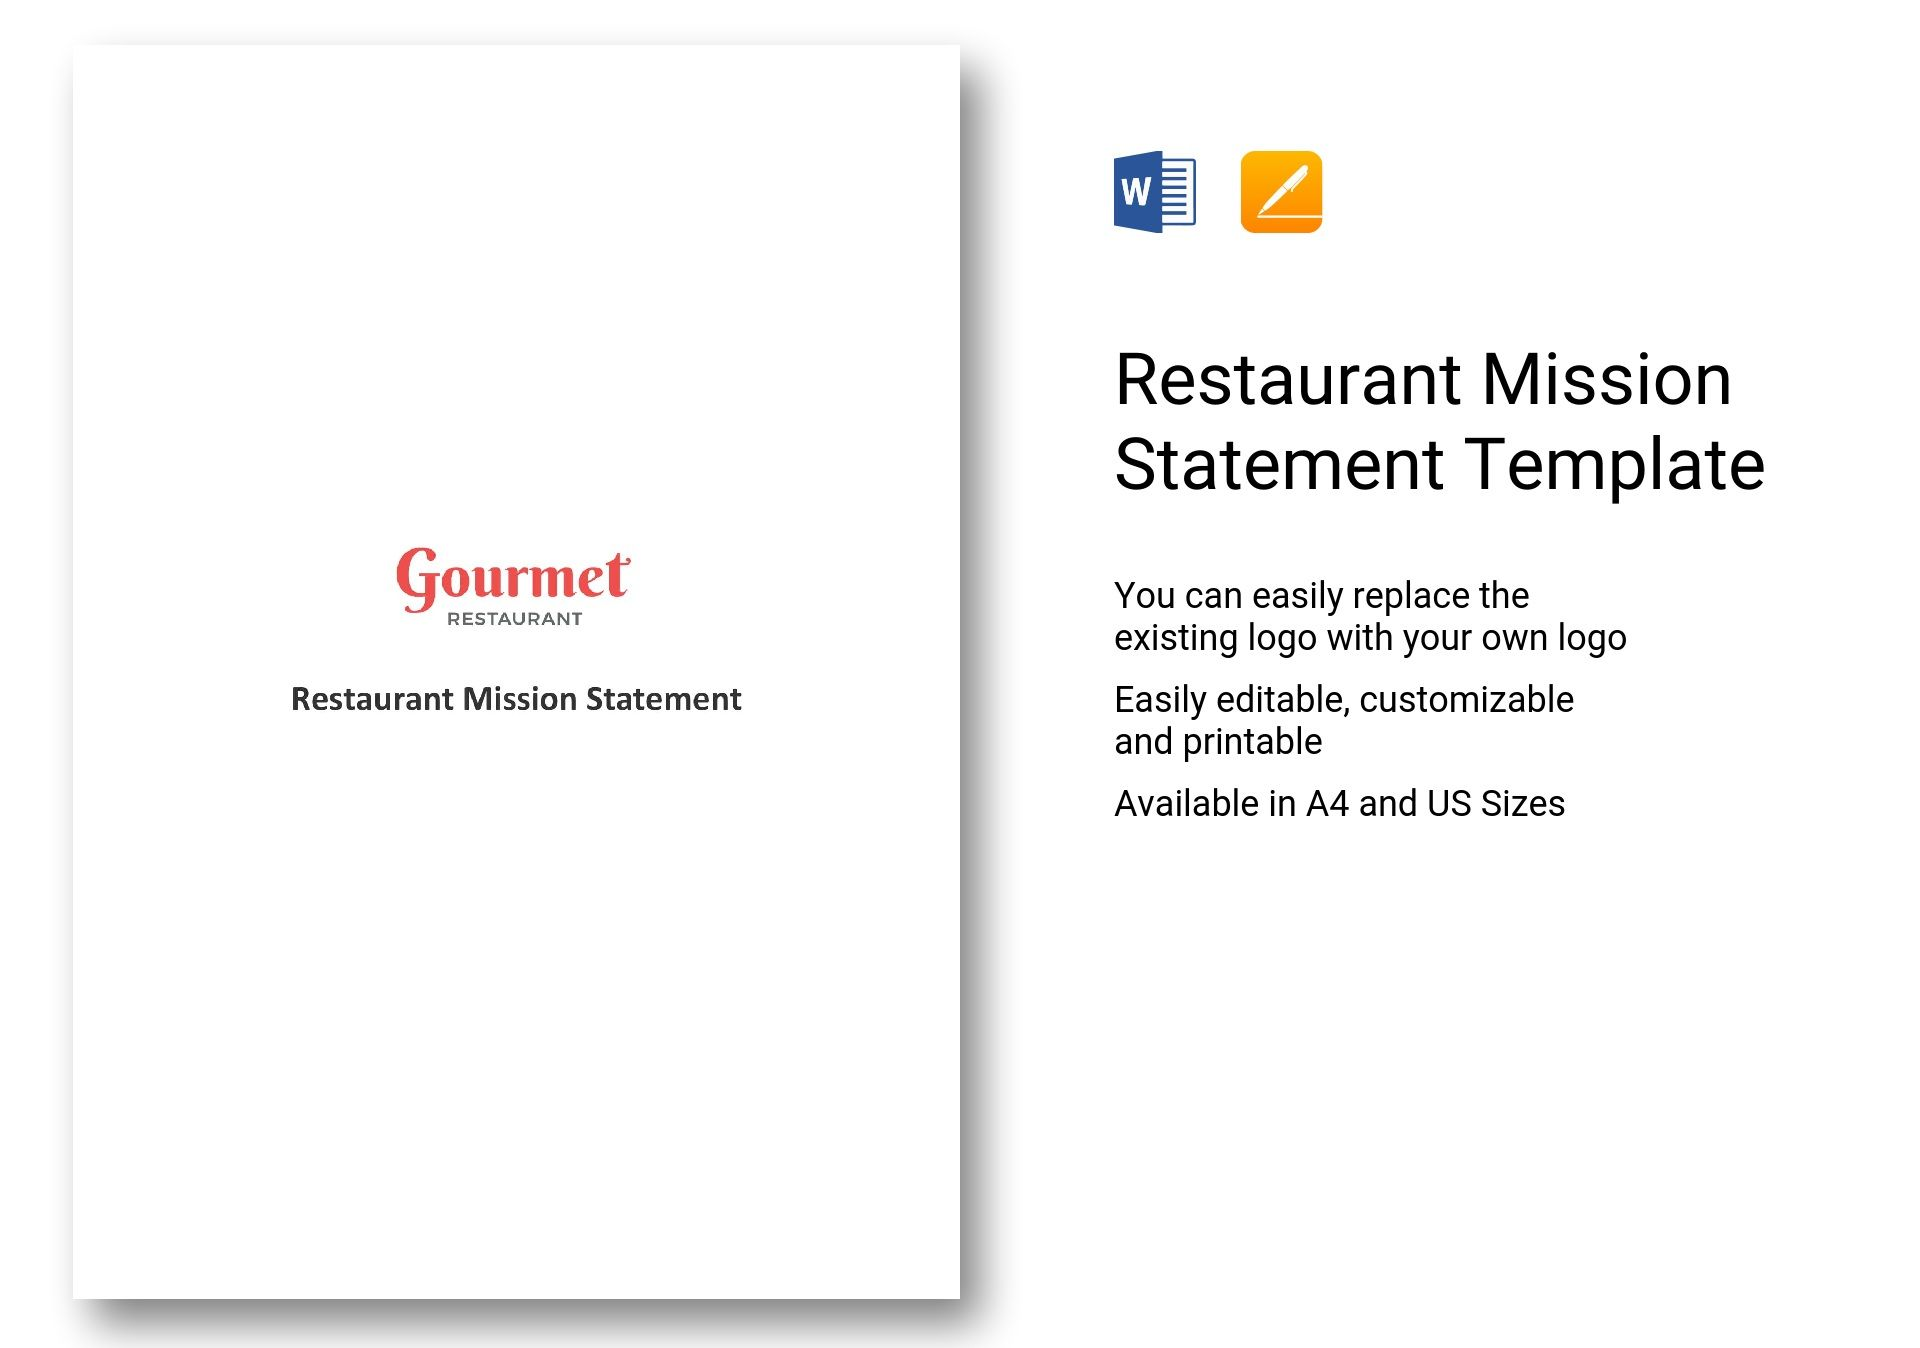 Restaurant Statement | Restaurant Mission Statement Template In Word Apple Pages